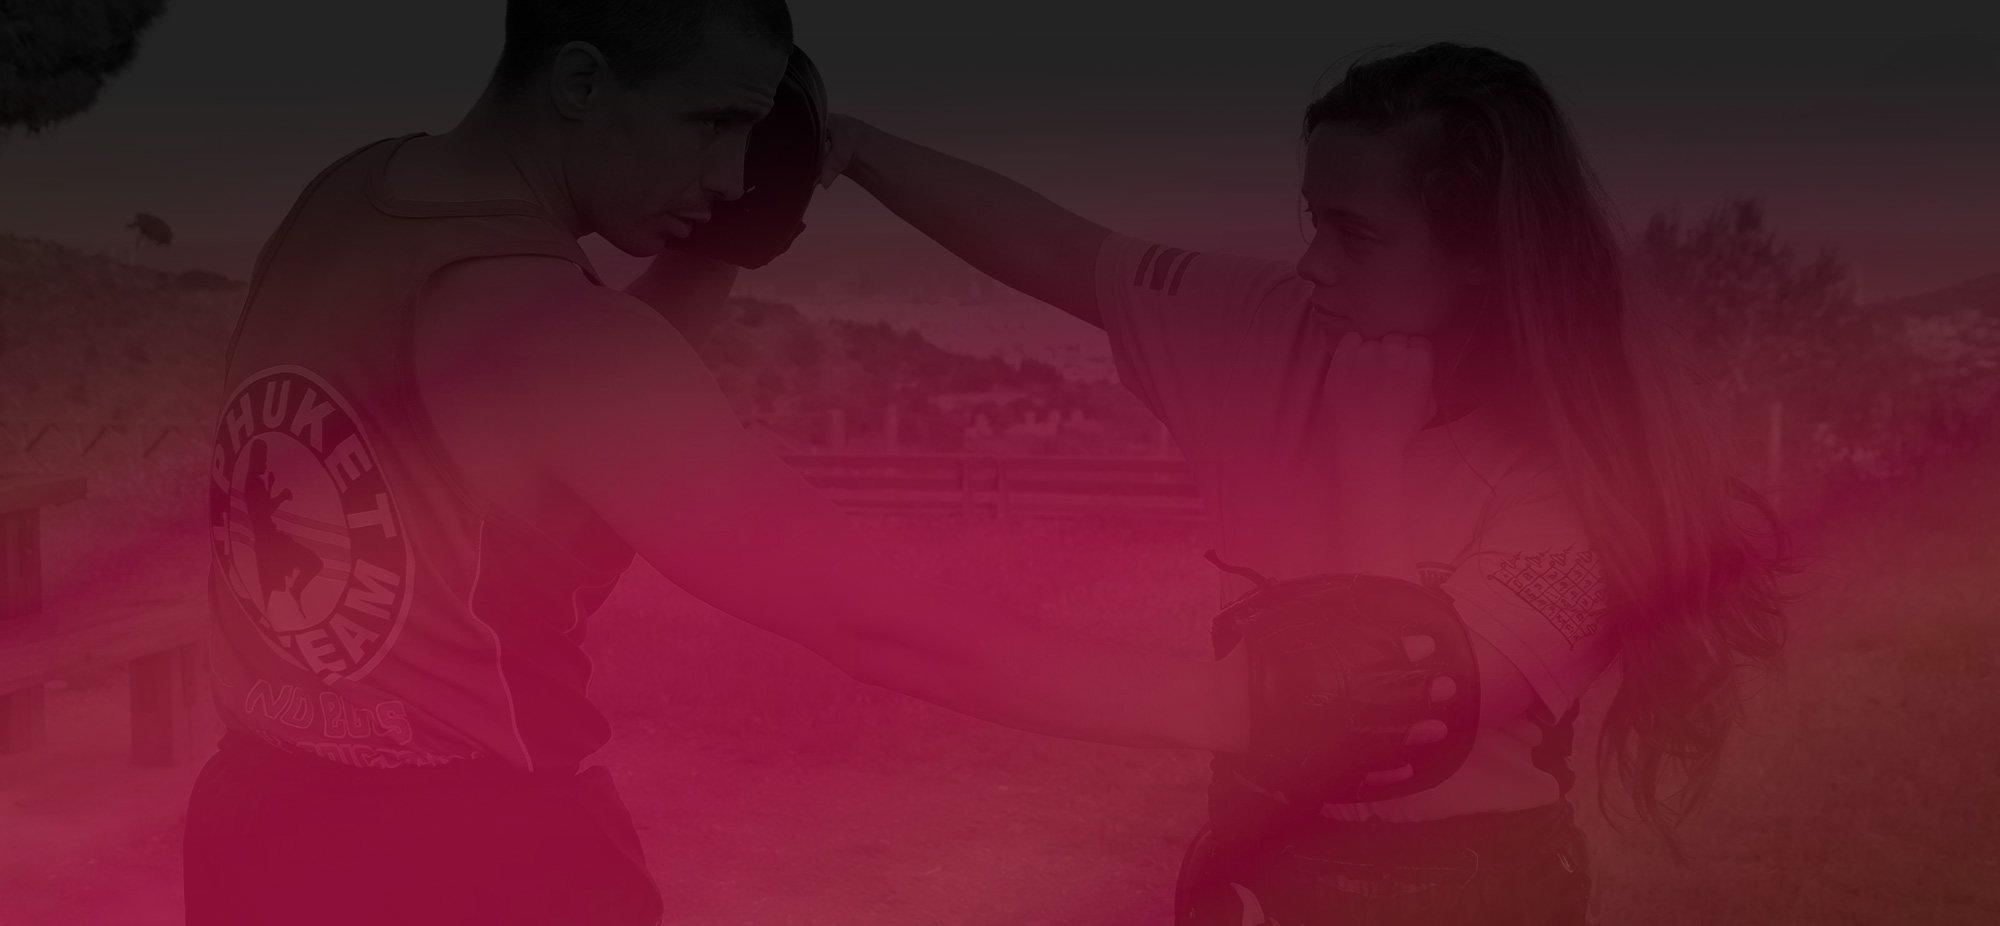 Defensa Personal Kick Boxing para mujeres